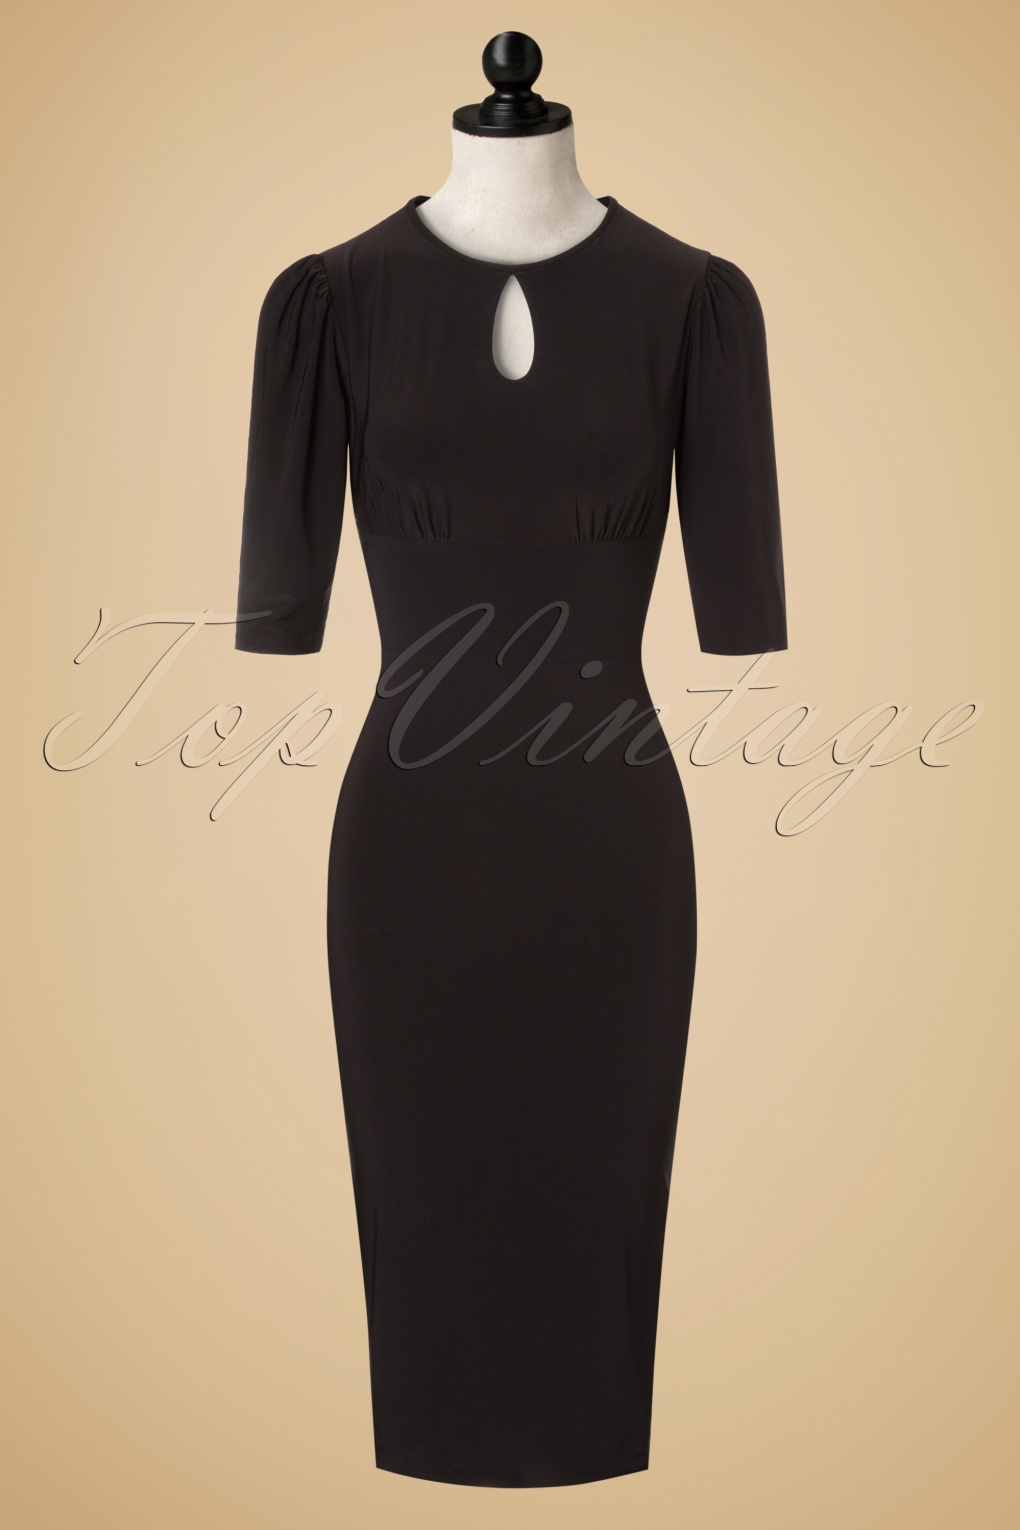 30s pencil dress in black